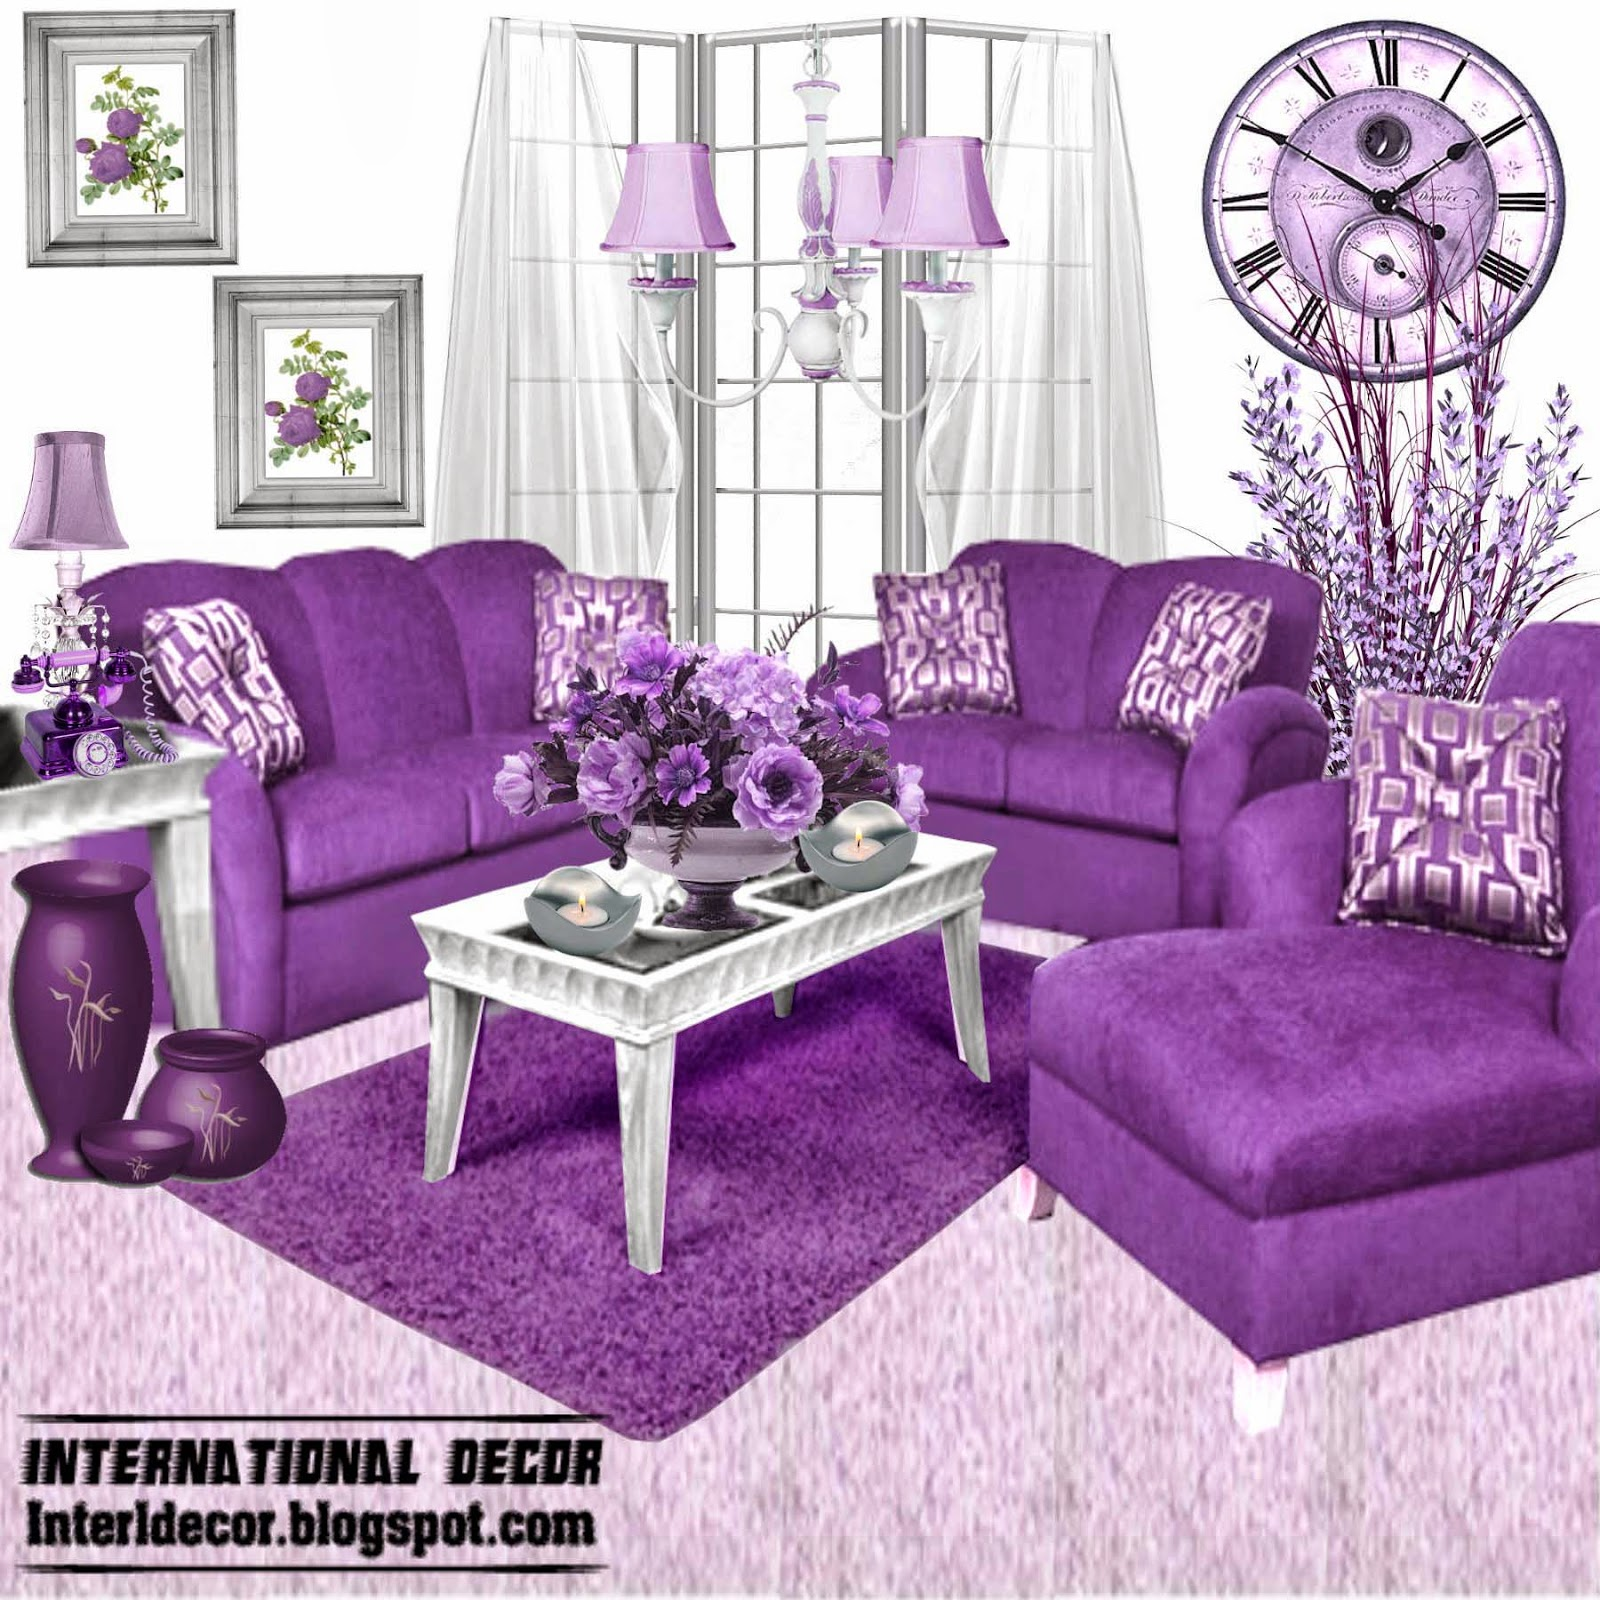 Purple furniture for the home pinterest purple for Living room furnishings